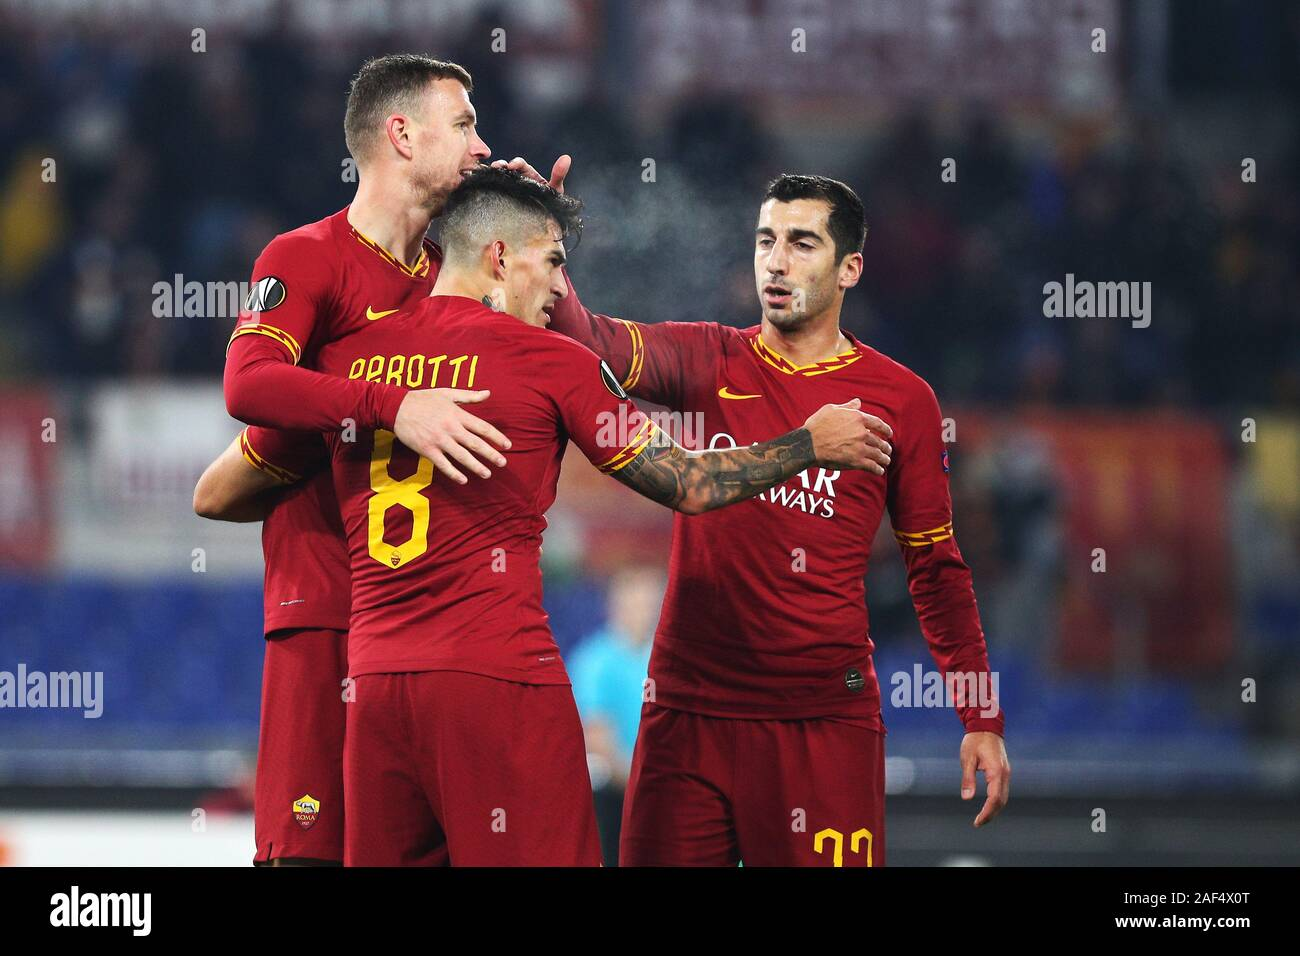 Edin Dzeko of Roma celebrates with his teammates after scoring 2-1 goal during the UEFA Europa League, Group J football match between AS Roma and Wolfsberg AC on December 12, 2019 at Stadio Olimpico in Rome, Italy - Photo Federico Proietti/ESPA-Imaes Stock Photo